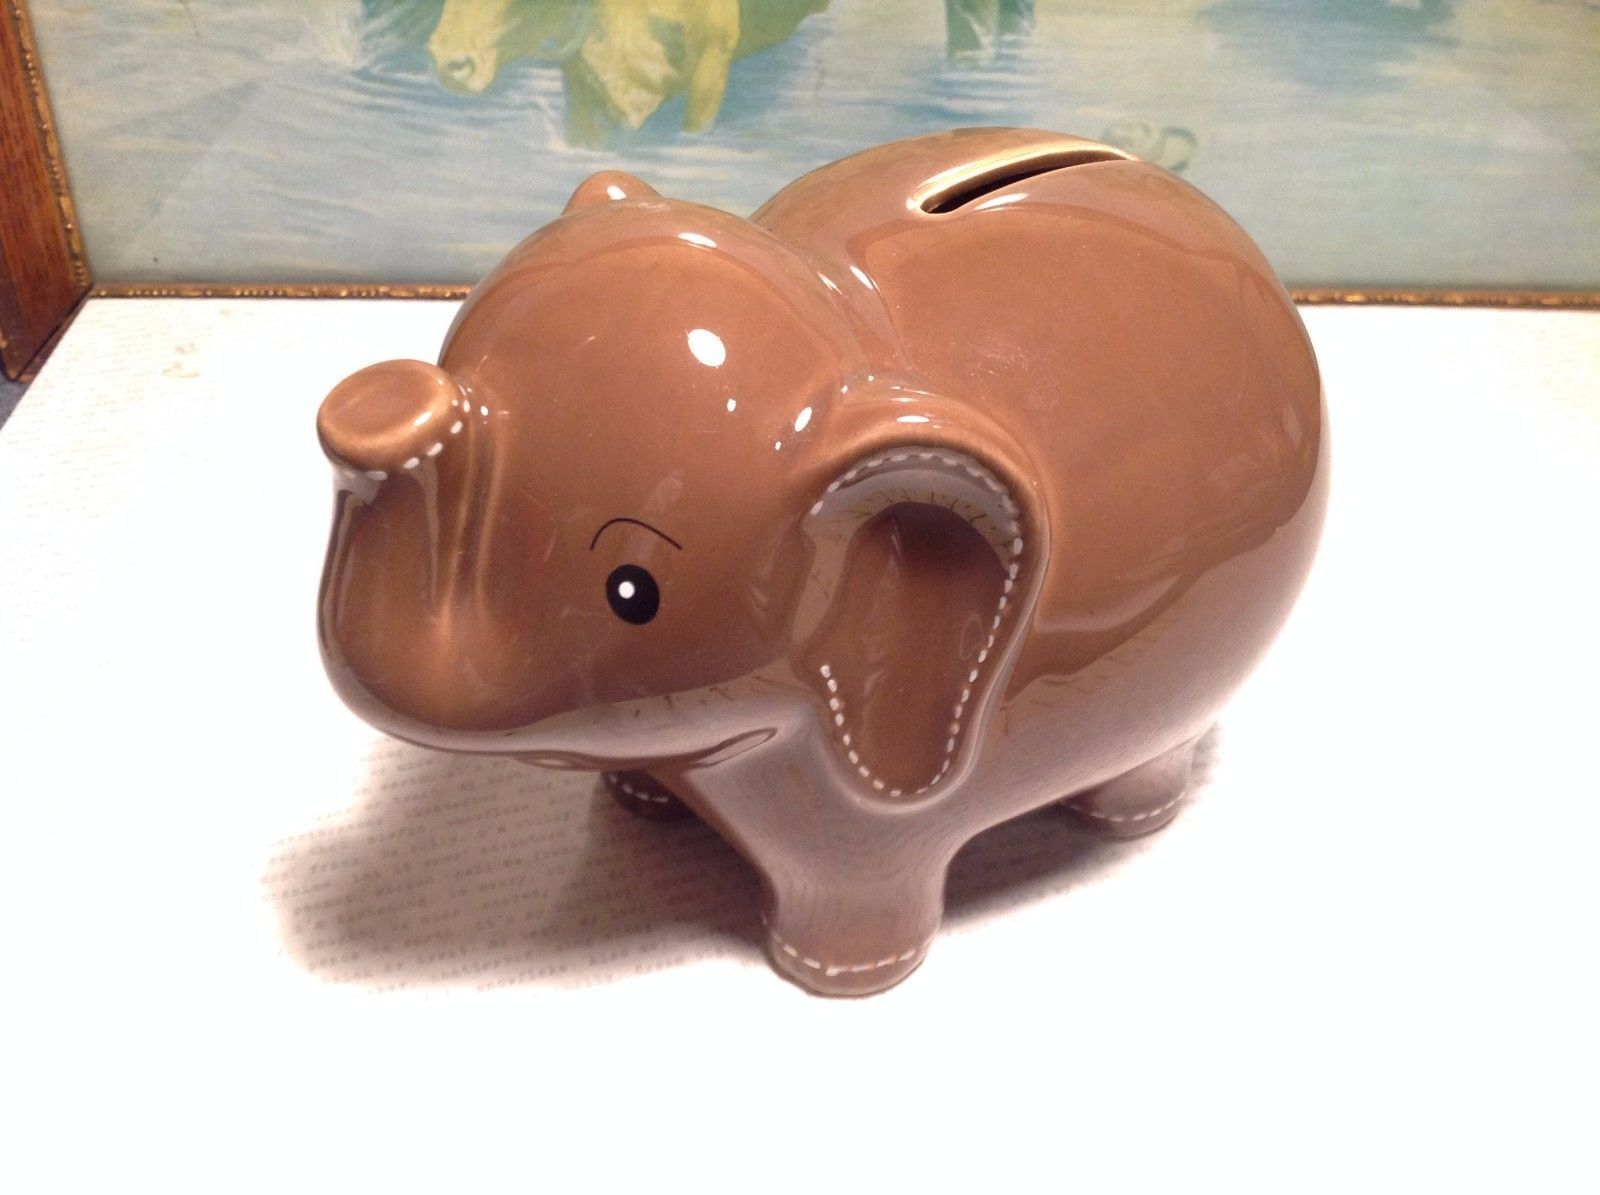 NEW Chocolate Brown Ceramic Elephant Piggy Bank